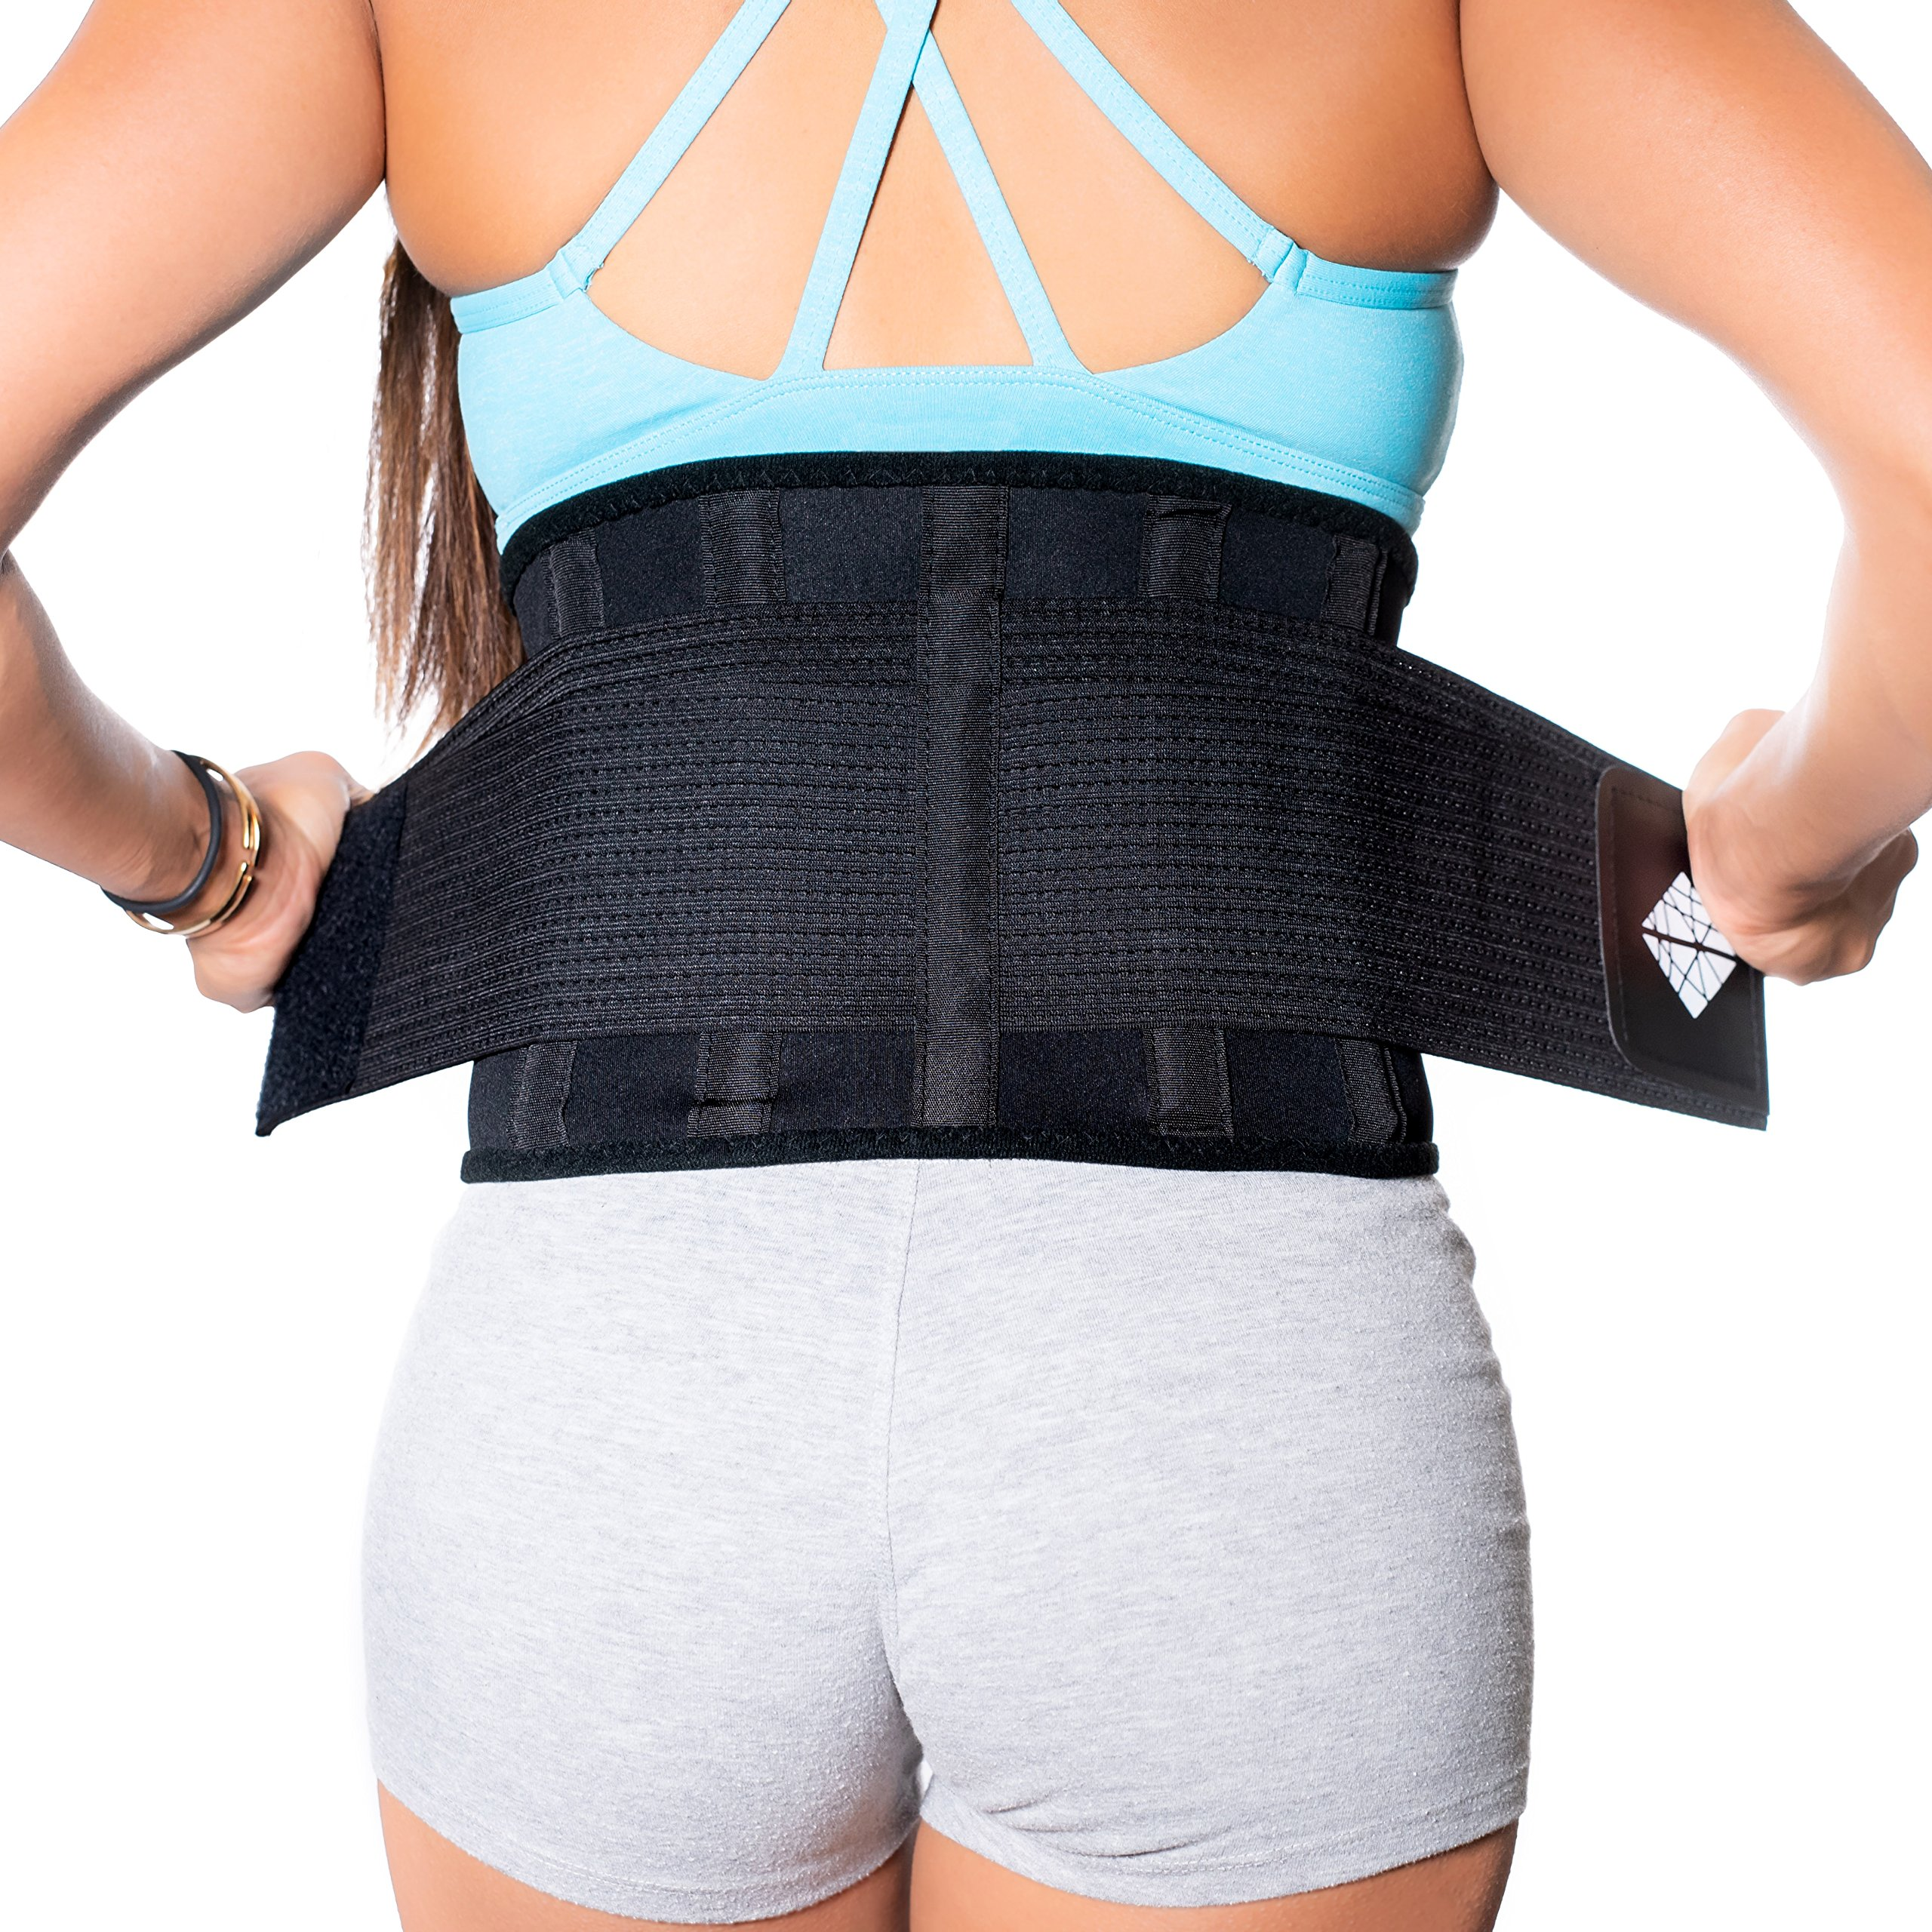 Lower Back Brace | Lumbar Support | Wrap for Posture Recovery, Workout, Herniated Disc Pain Relief | Waist Trimmer Weight Loss Ab Belt | Exercise Adjustable | Breathable | Women & Men | Black XL by NeoHealth